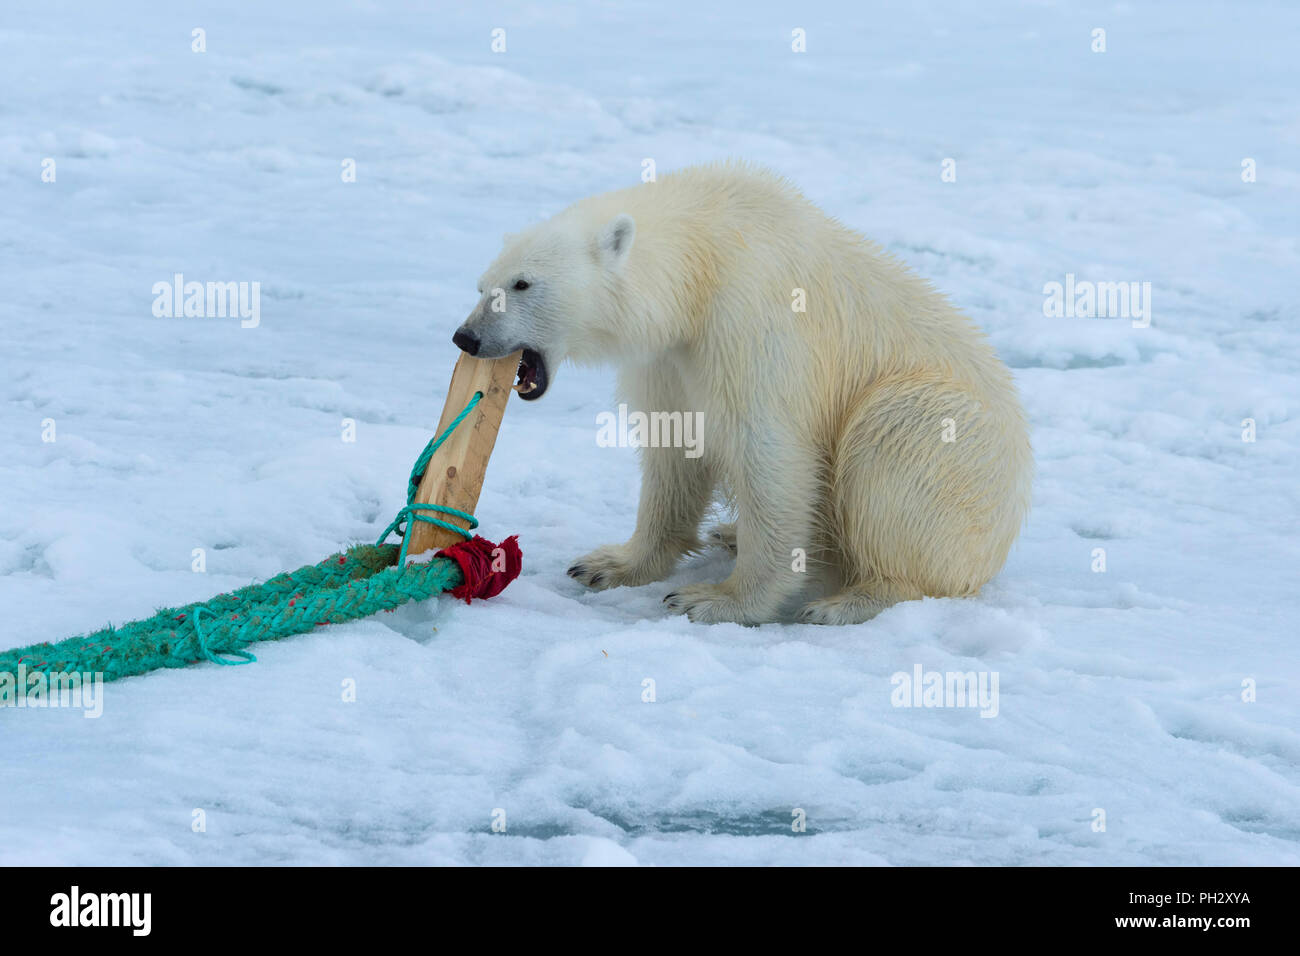 Polar Bear (Ursus maritimus) inspecting and chewing on the pole of an expedition ship, Svalbard Archipelago, Norway - Stock Image